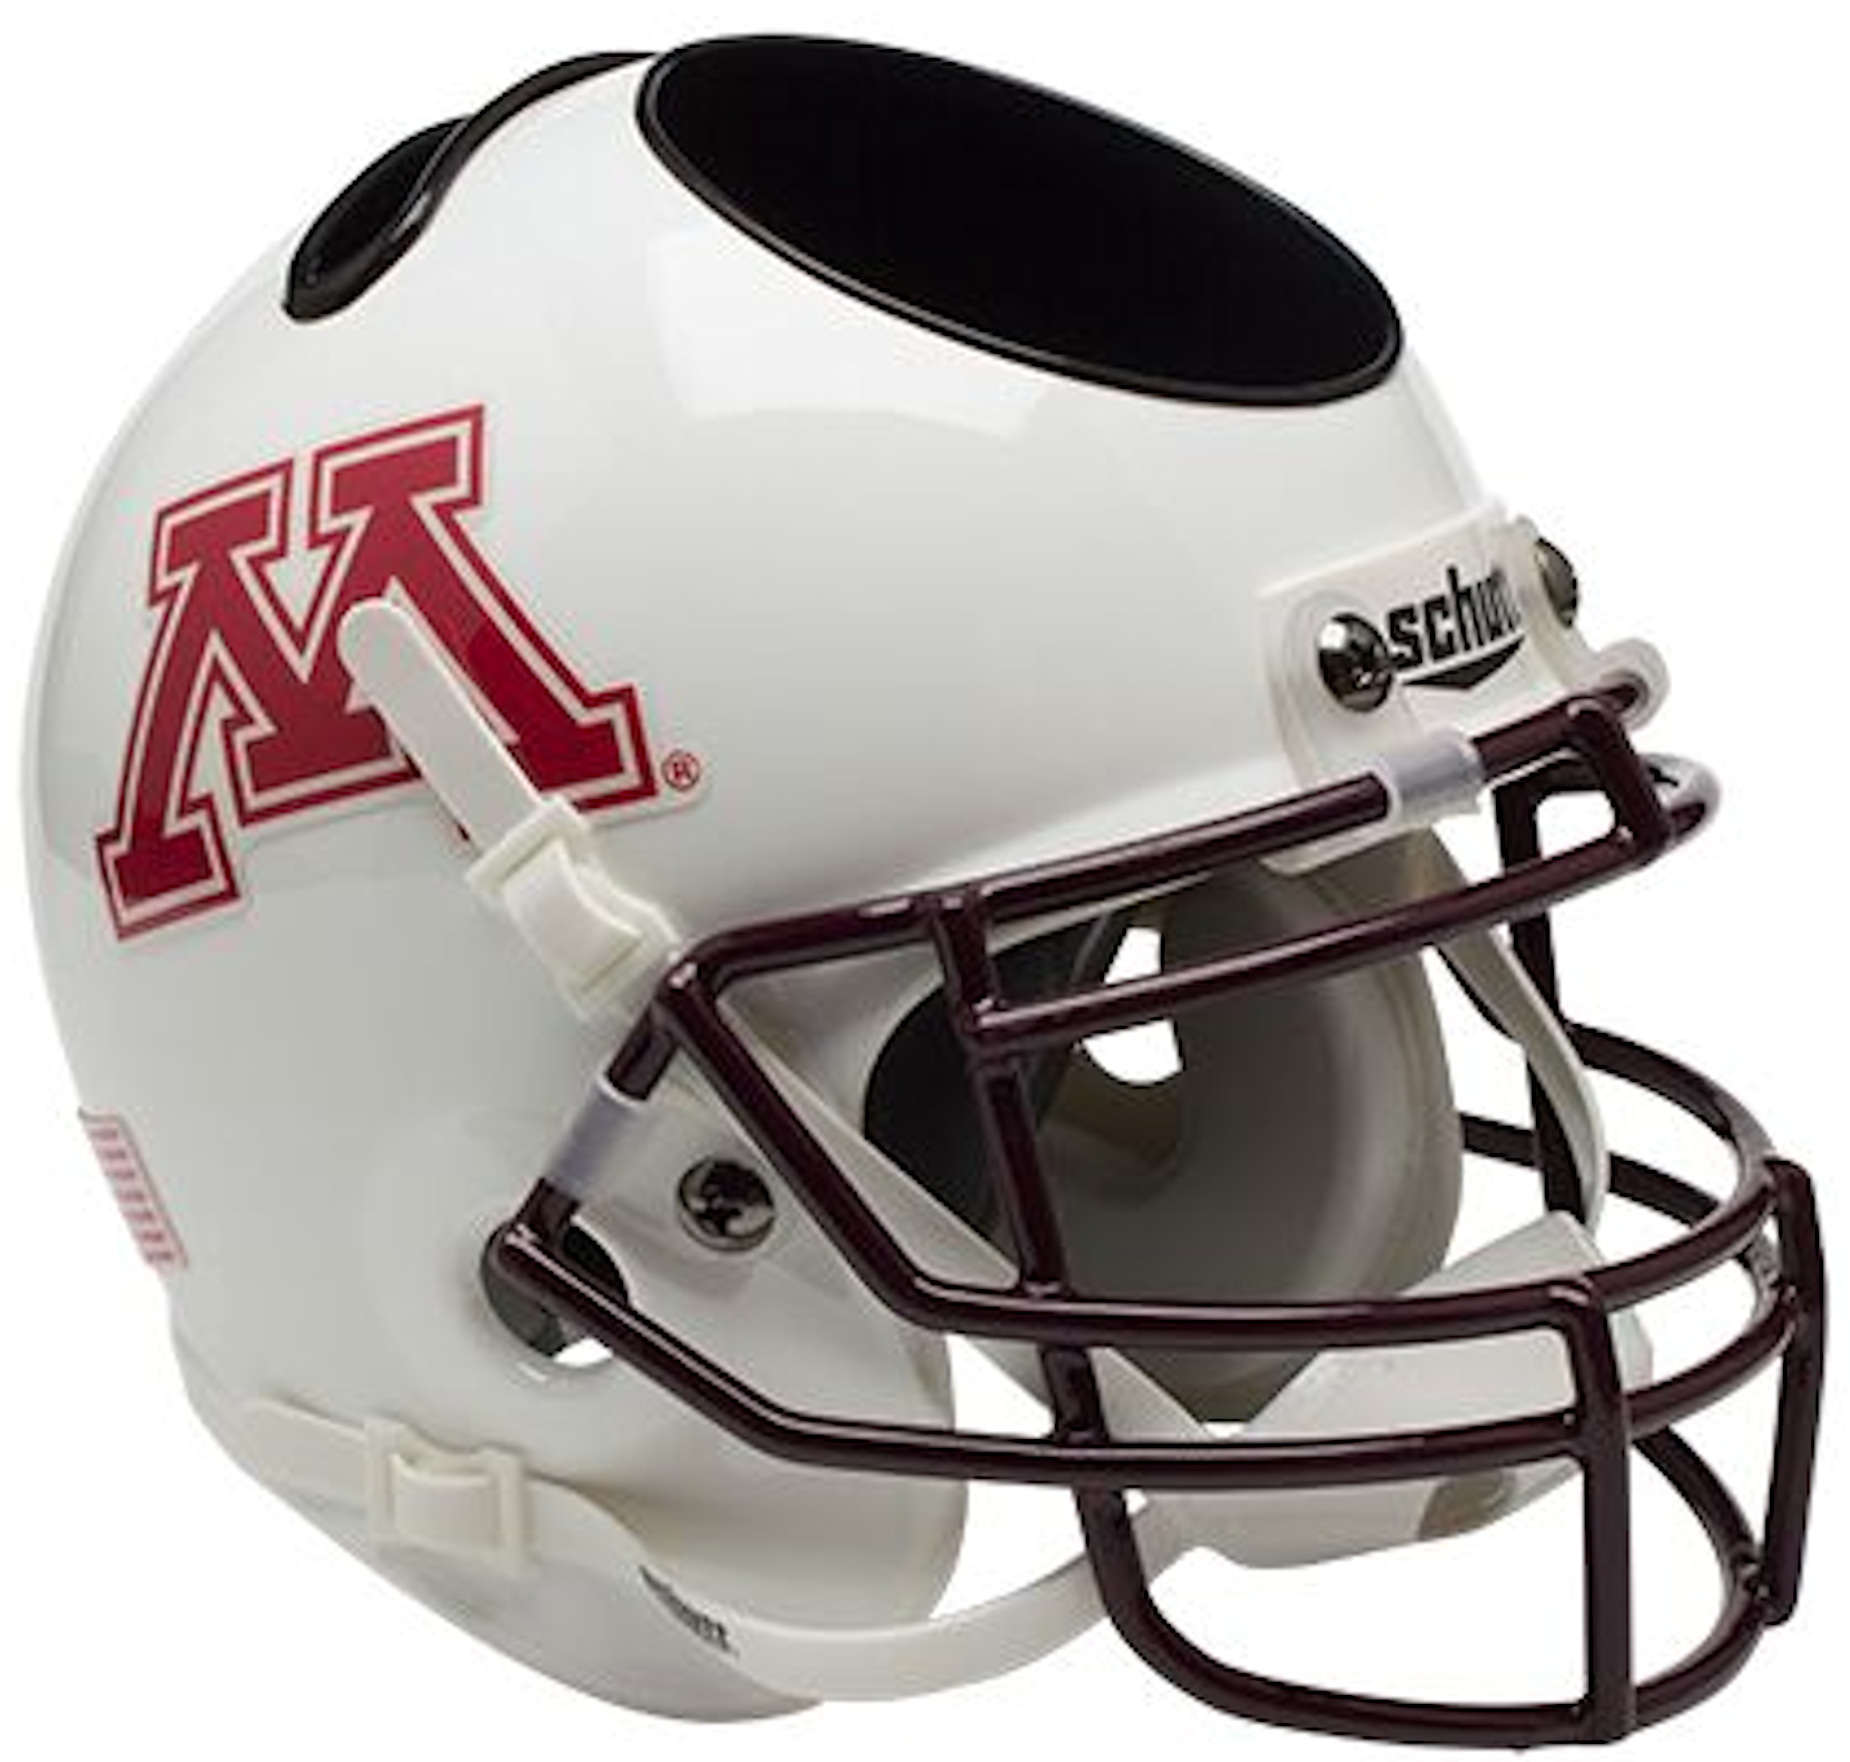 Minnesota Golden Gophers Miniature Football Helmet Desk Caddy <B>White</B>